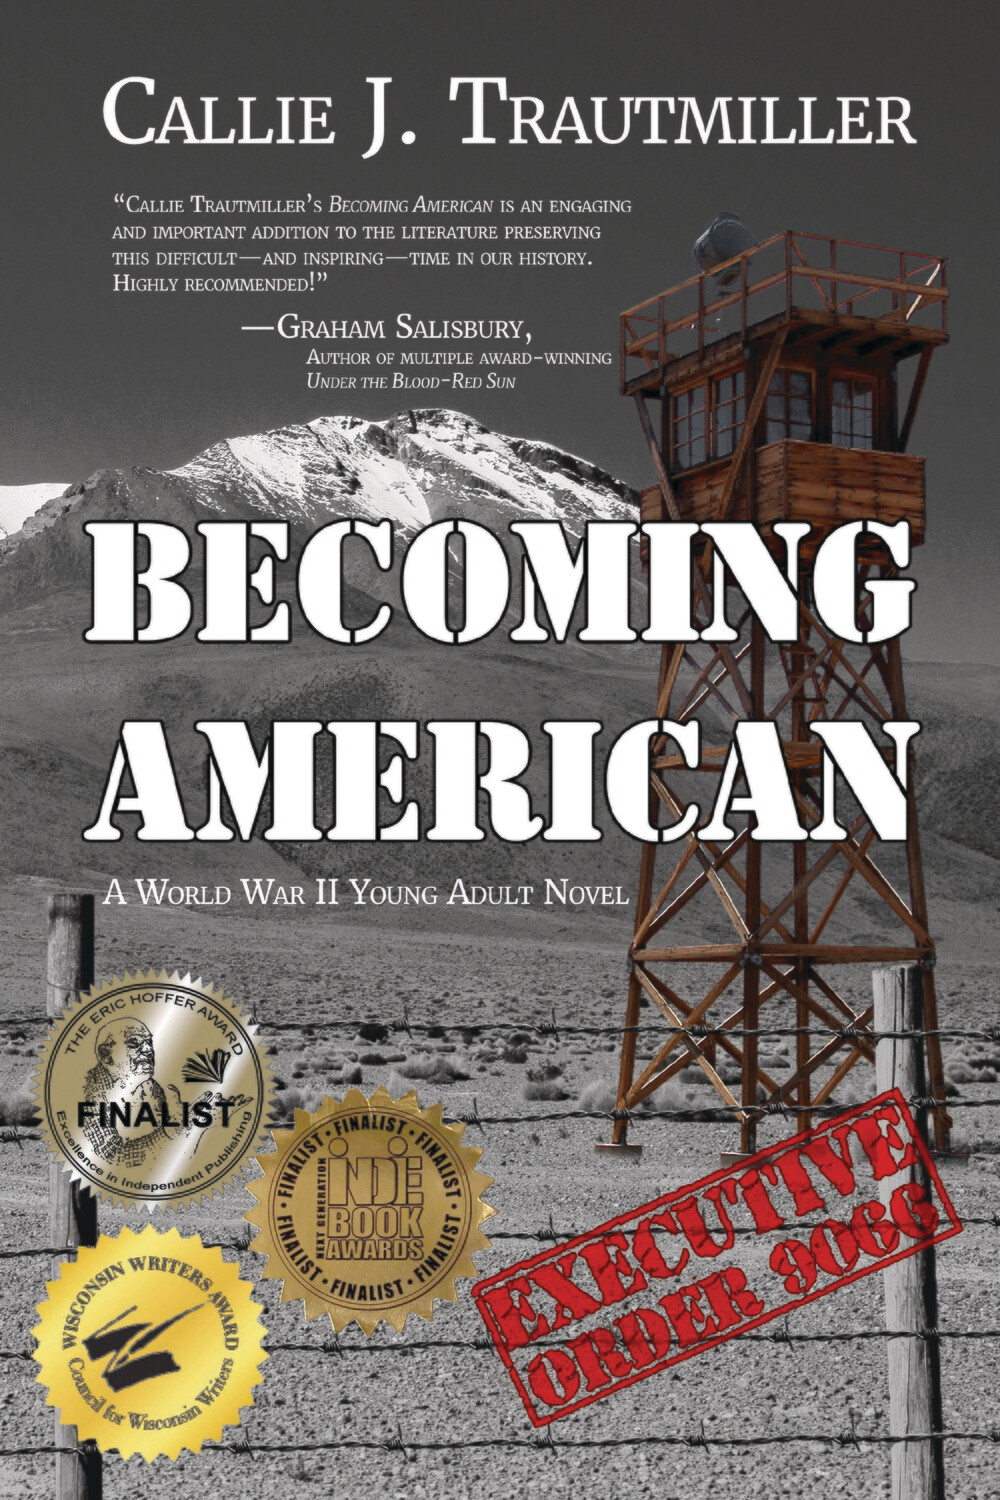 Becoming American: A World War II Young Adult Novel by Callie J. Trautmiller